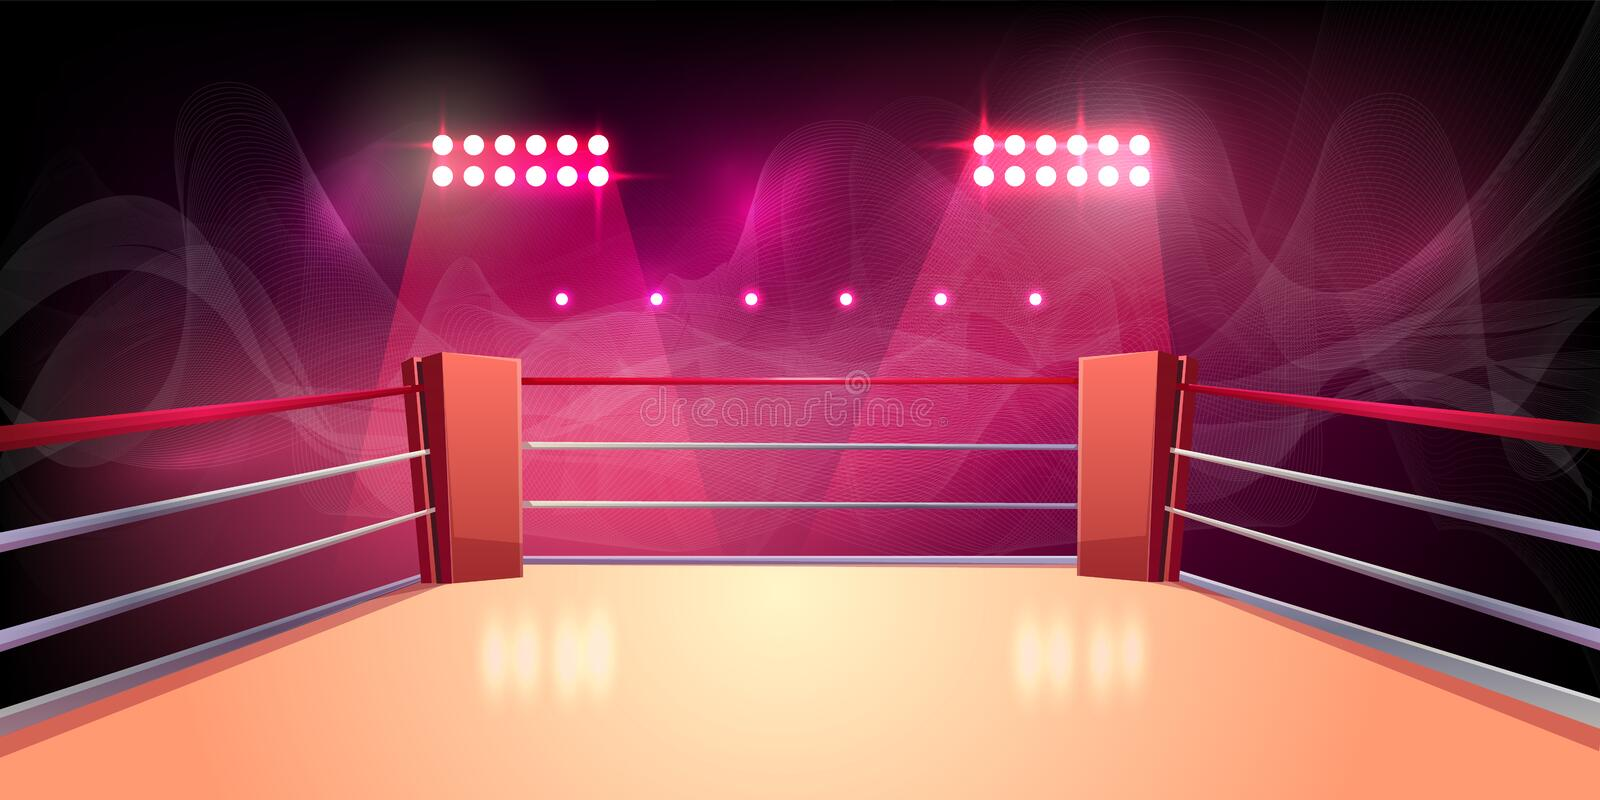 Vector background of boxing ring, illuminated arena vector illustration